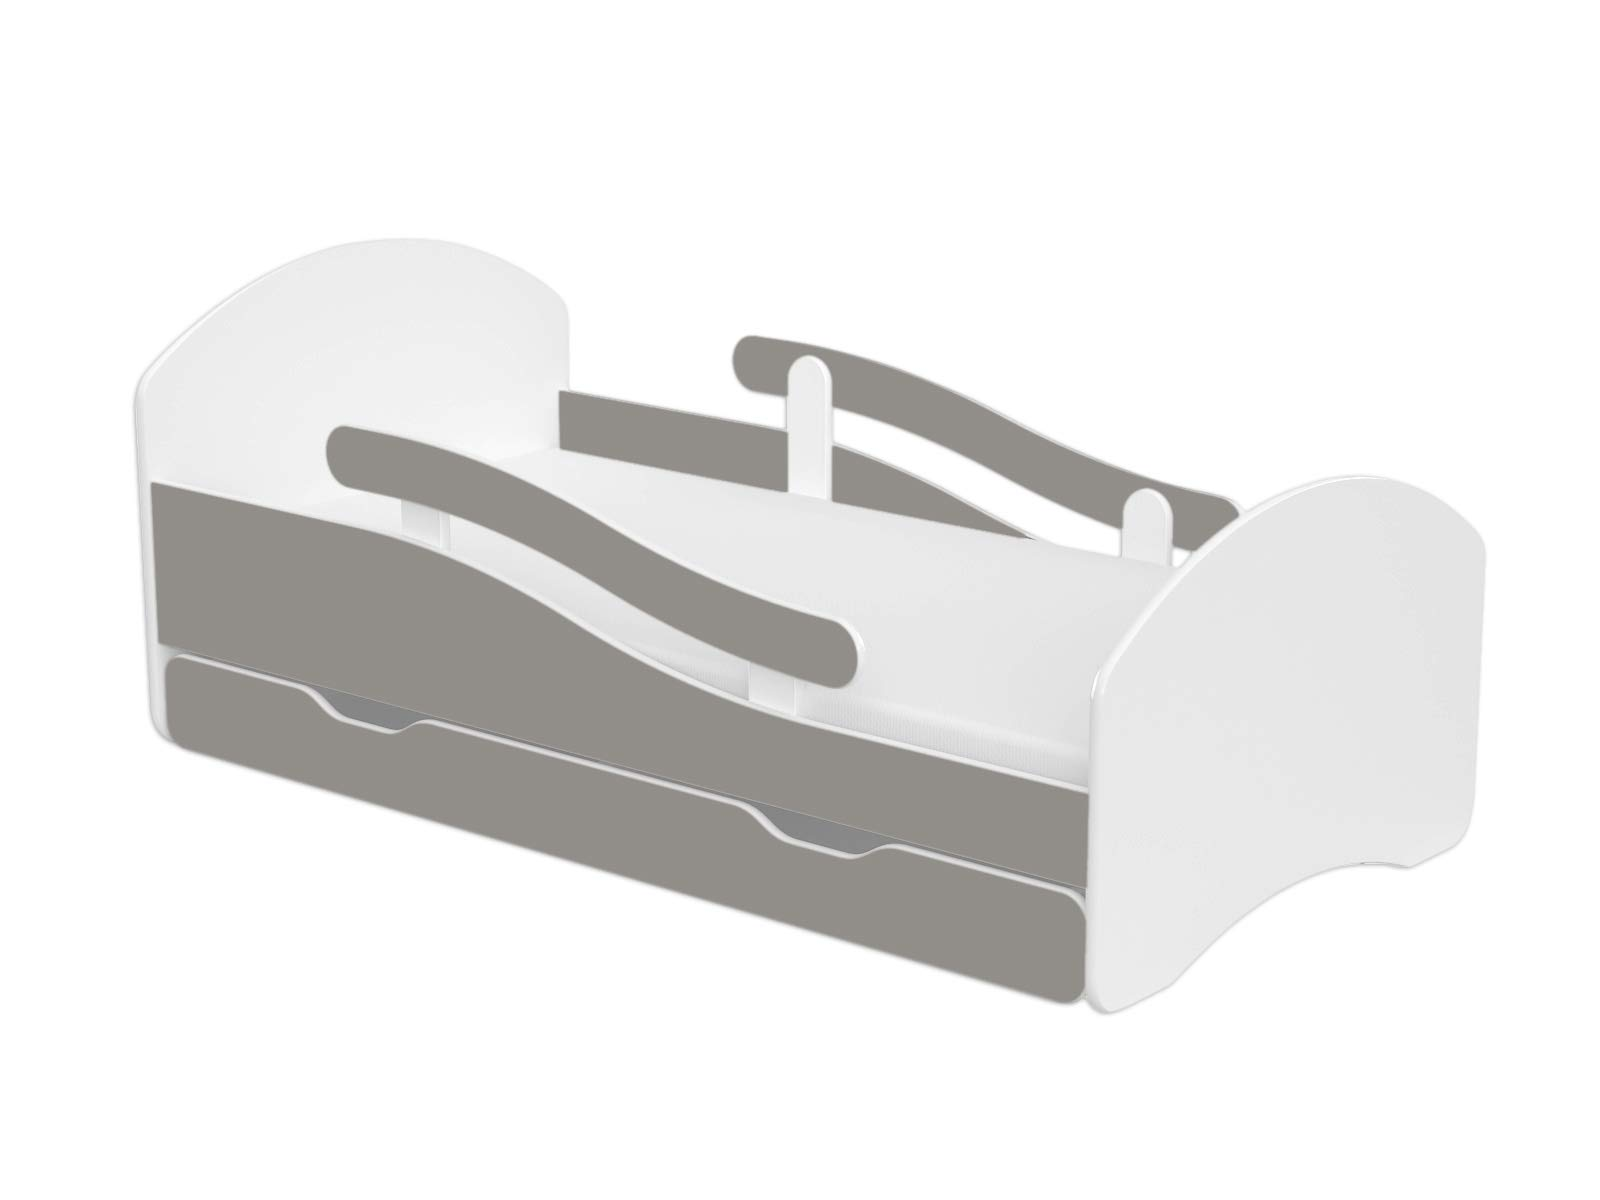 ChildrensBeds Home Single Bed Oscar For Kids Children Toddler Juniors With Drawers But No Mattress Included (White - Grey, 140x70) Children's Beds Home Bed with barriers - internal dimensions 140x70, 160x80, 180x80 (External dimensions: 145x76, 165x86, 185x86) Height to top of the bed frame at lowes point is 27 cm. Bed frame with load capacity of 100 kg, Fittings + installation instructions Universal bed entrance - right or left side, front barriers can be easily removed during the day and put back at night 1